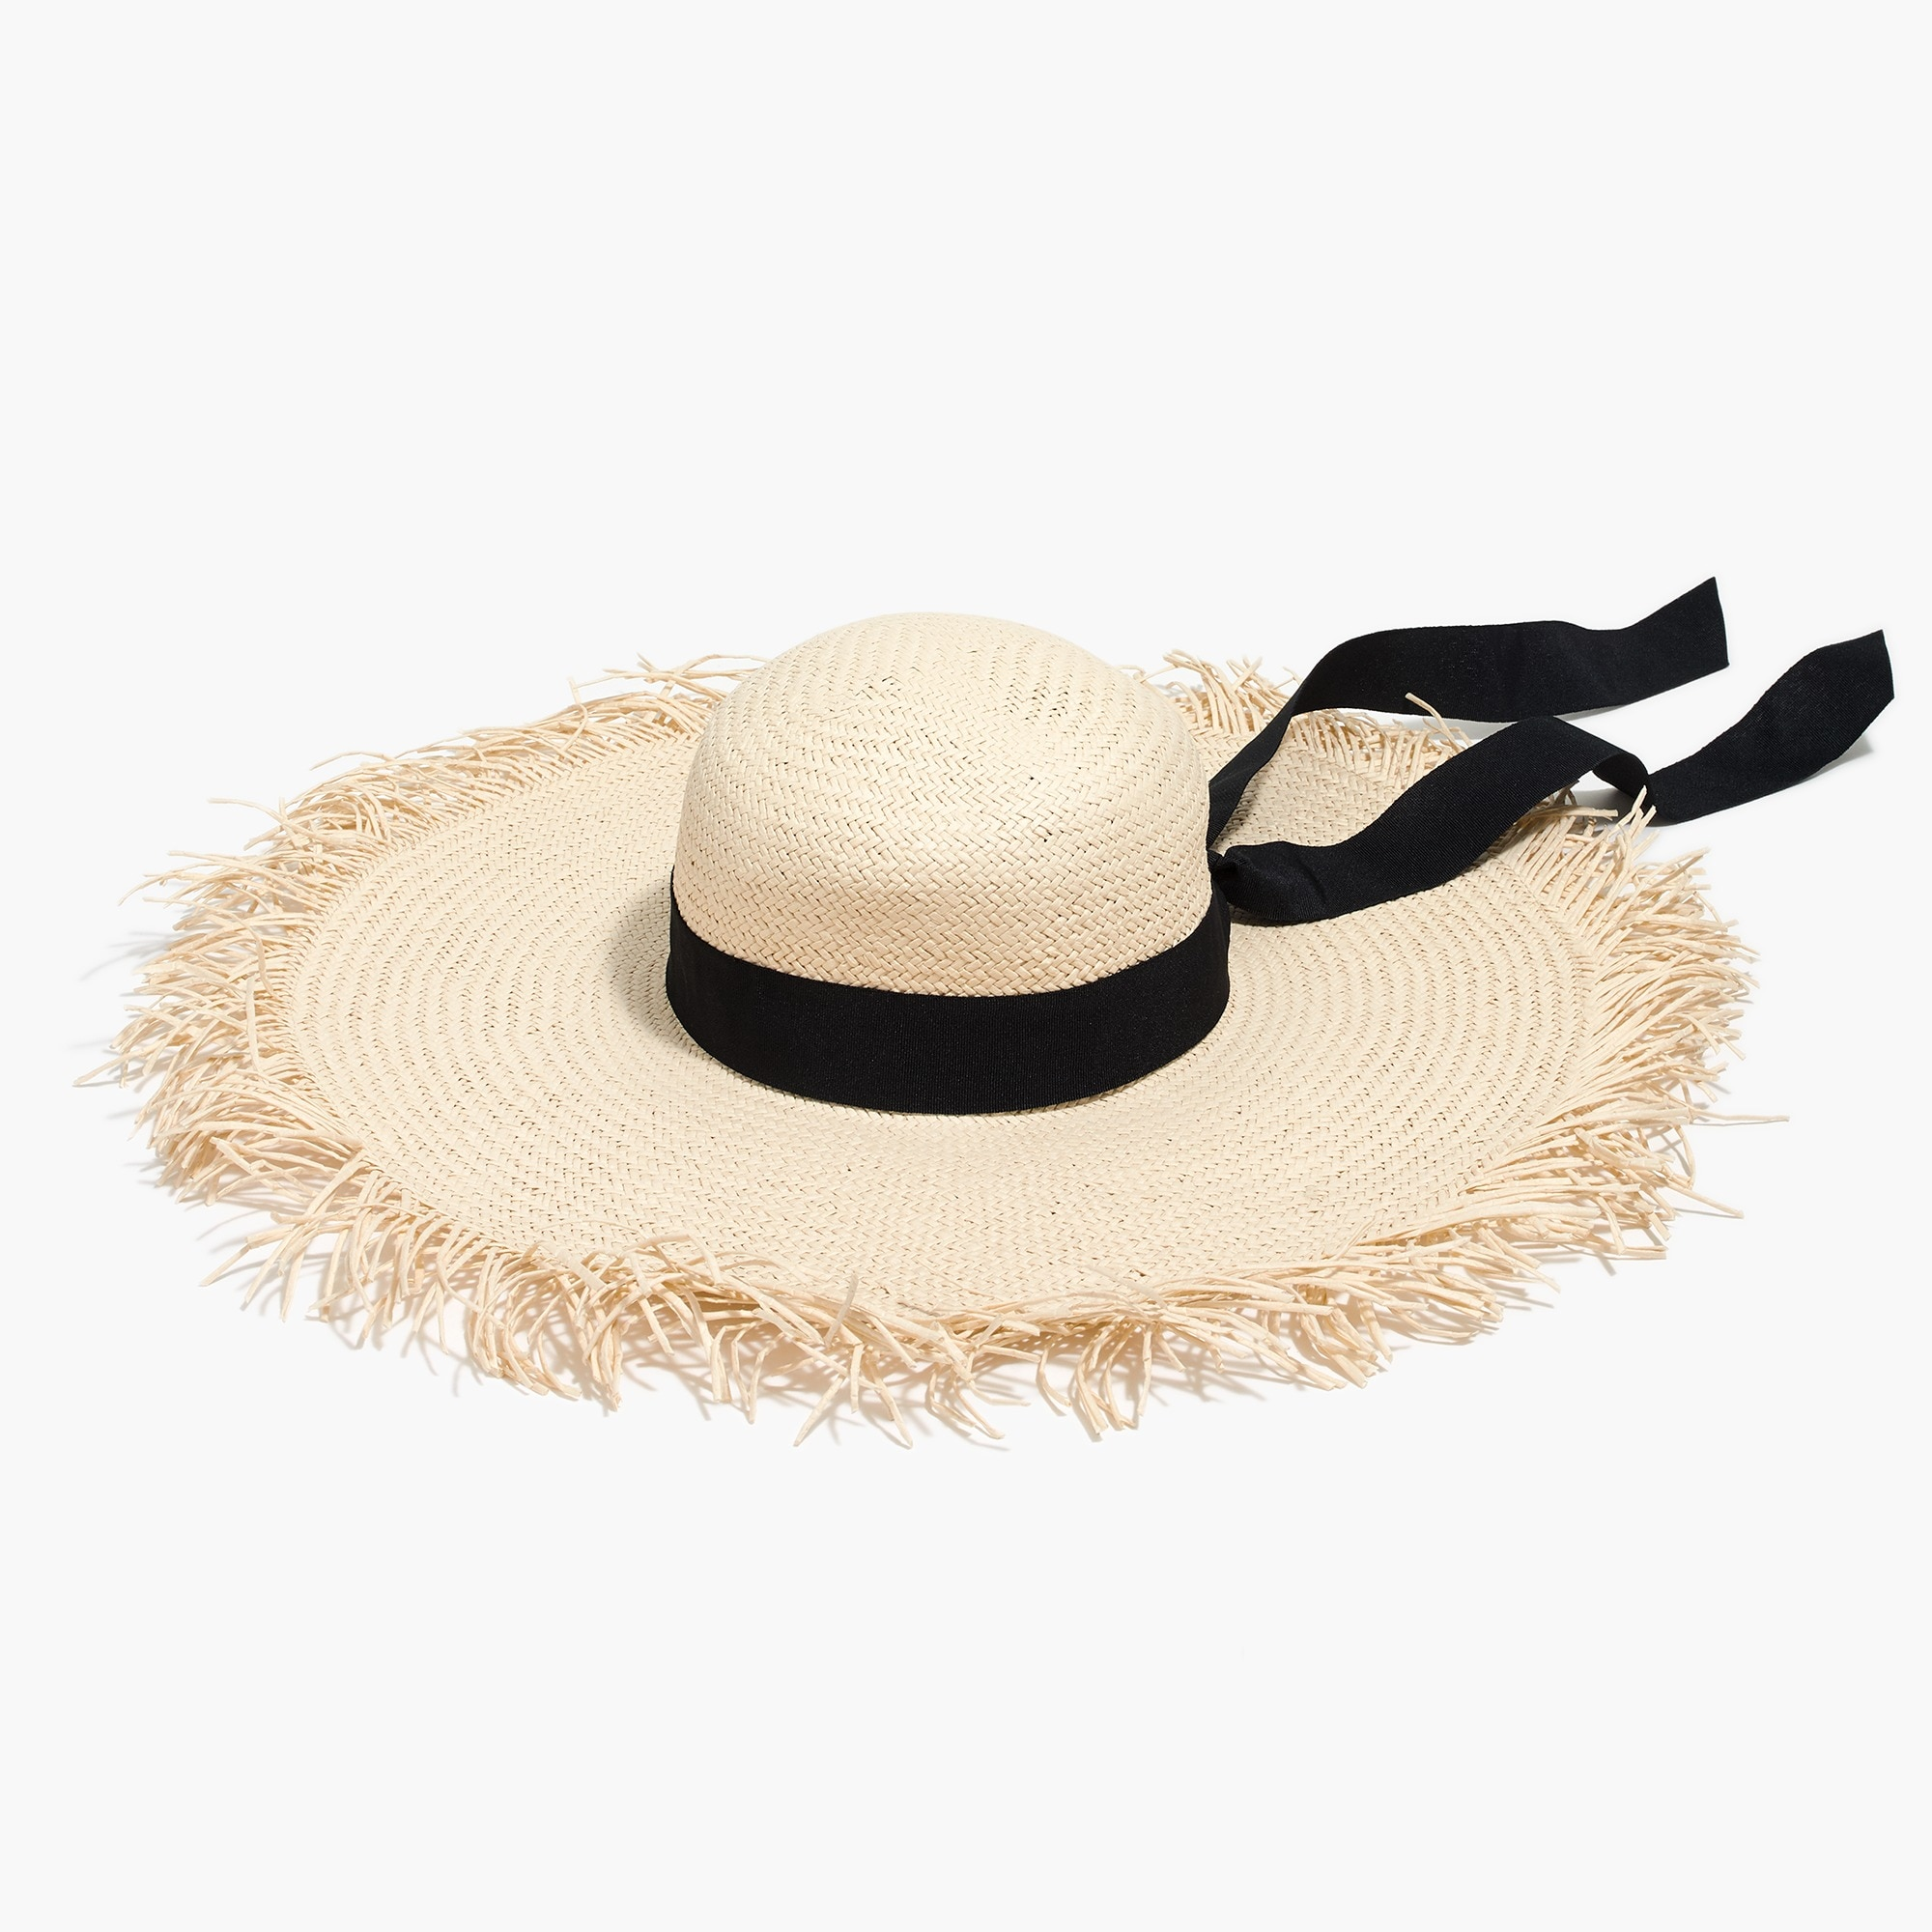 Raw-edge straw hat